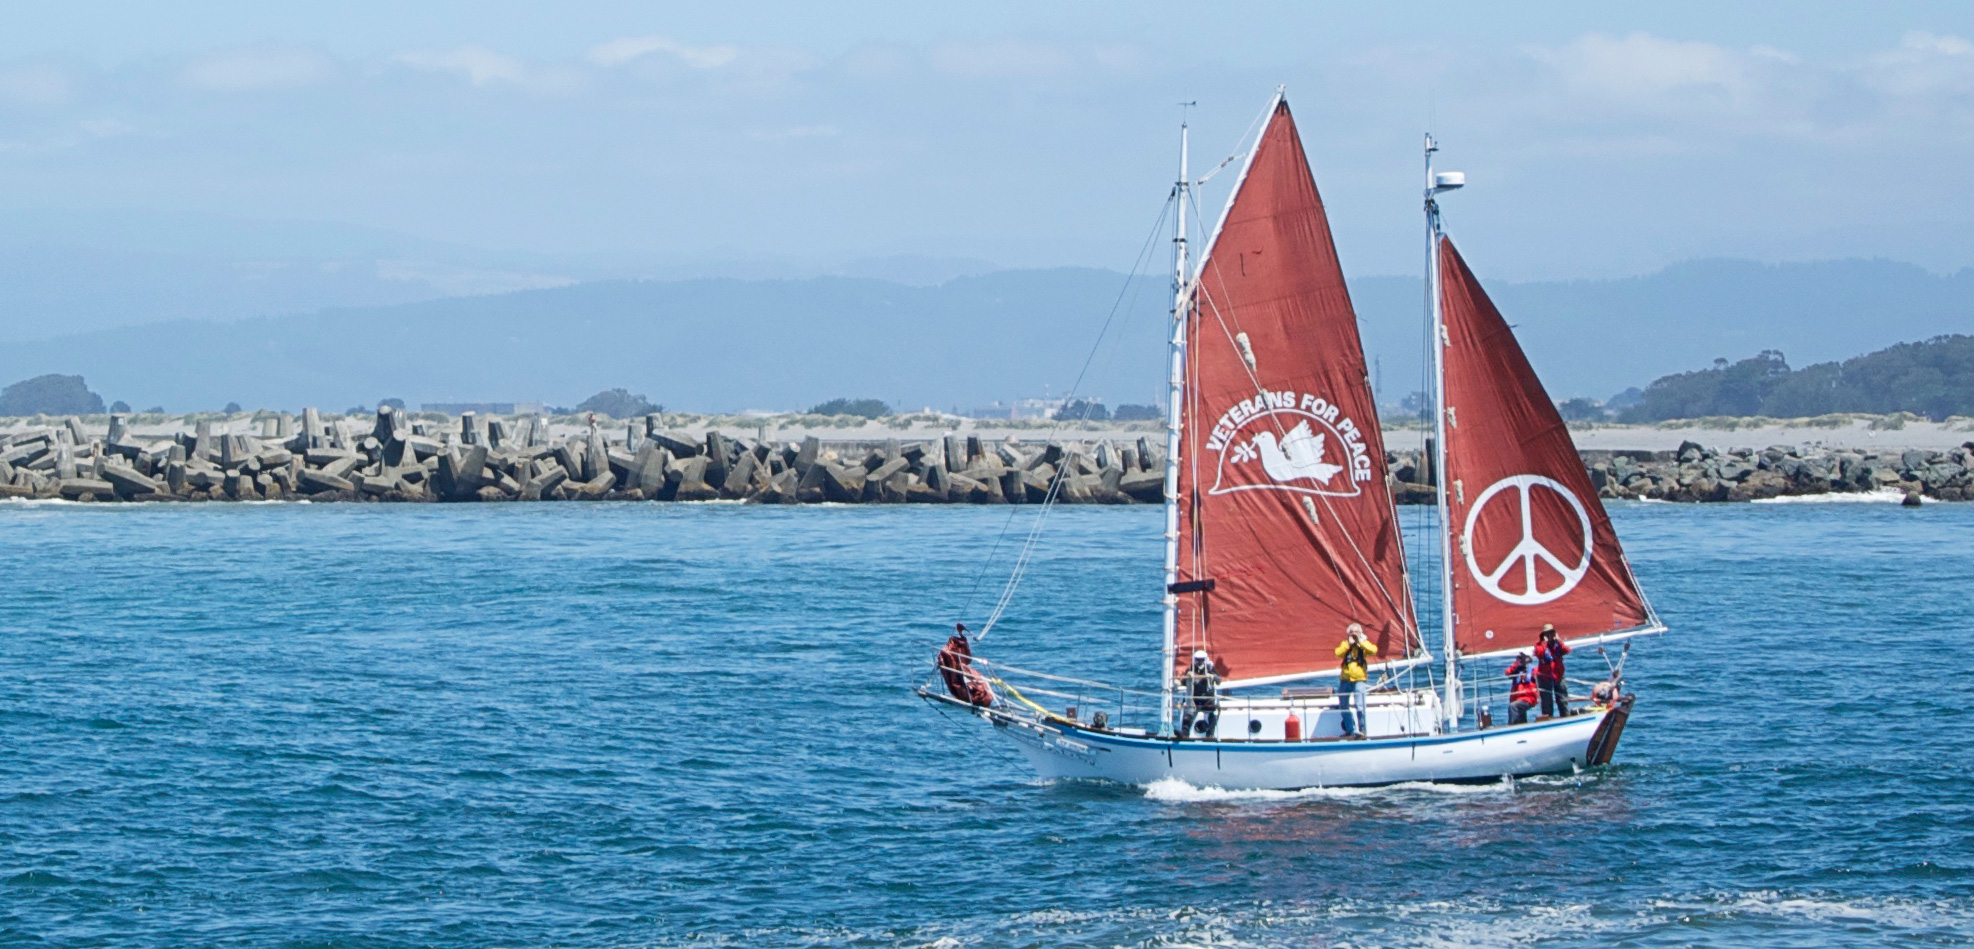 Newly restored, the Golden Rule departs from California's Humboldt Bay on a modern peace mission. Photo by Sarah Scoles